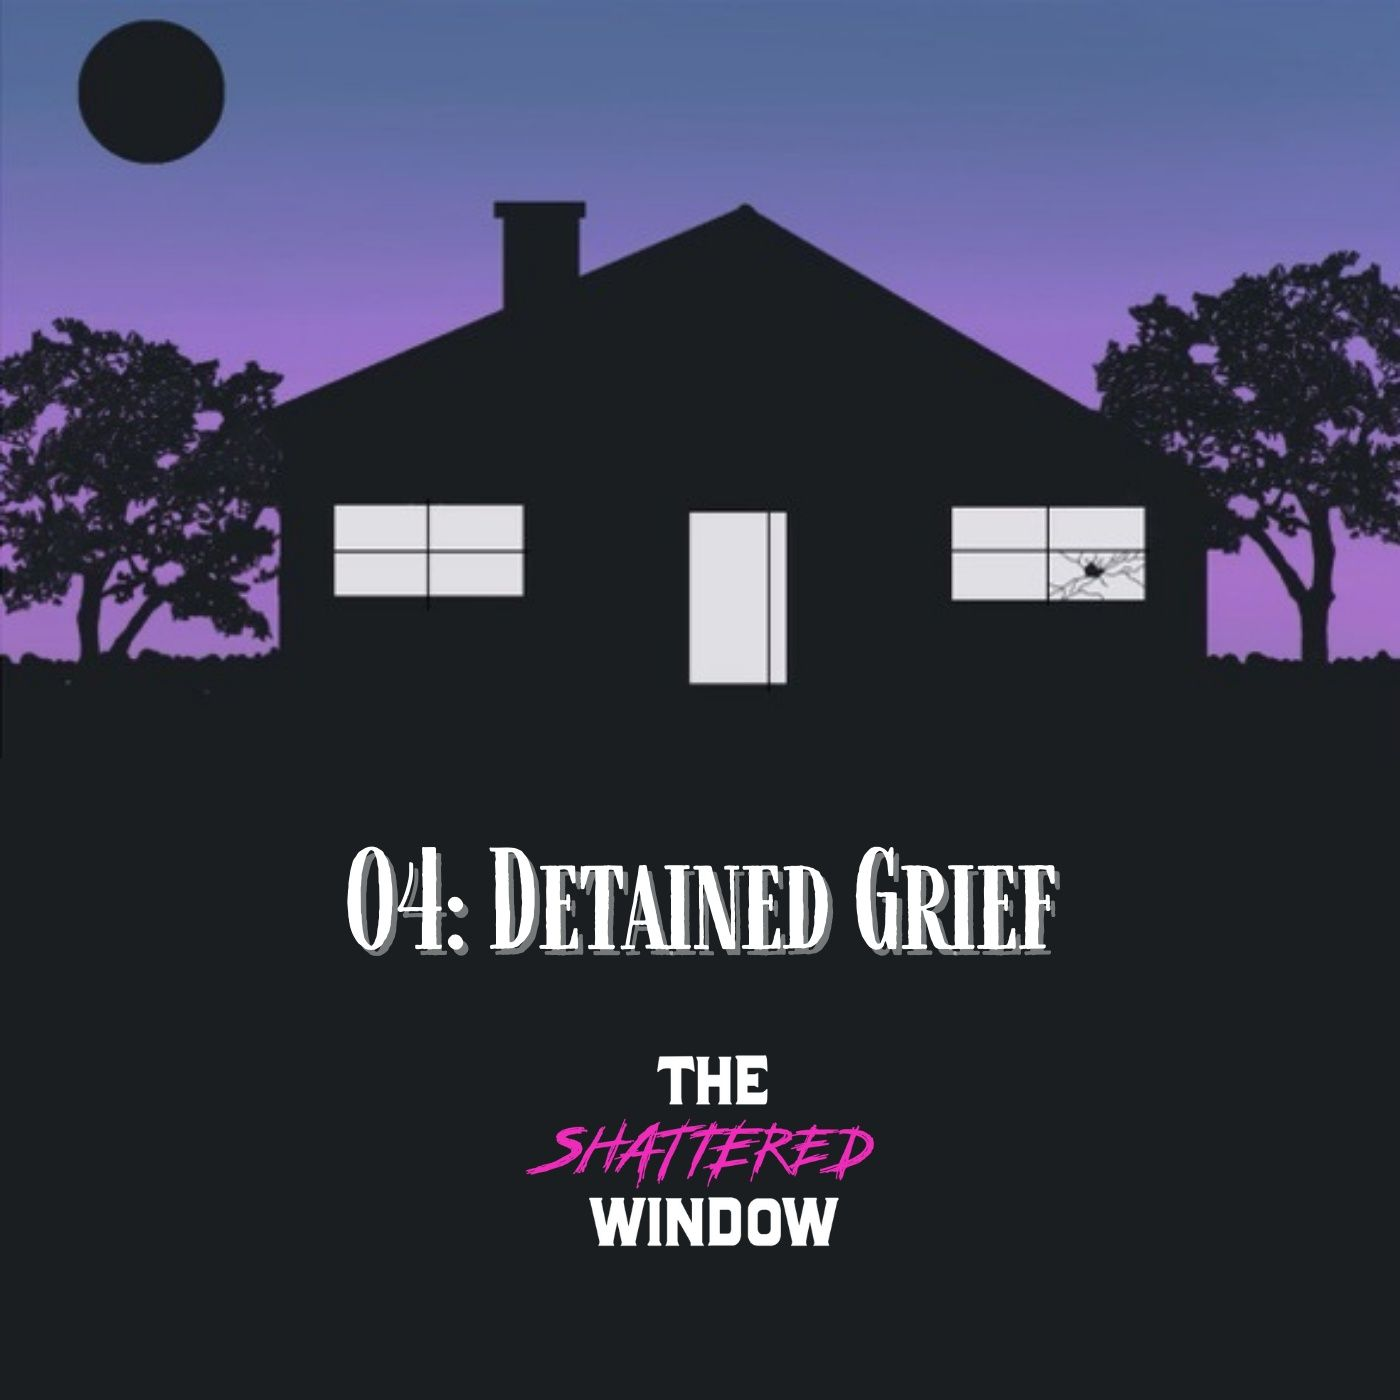 04: Detained Grief